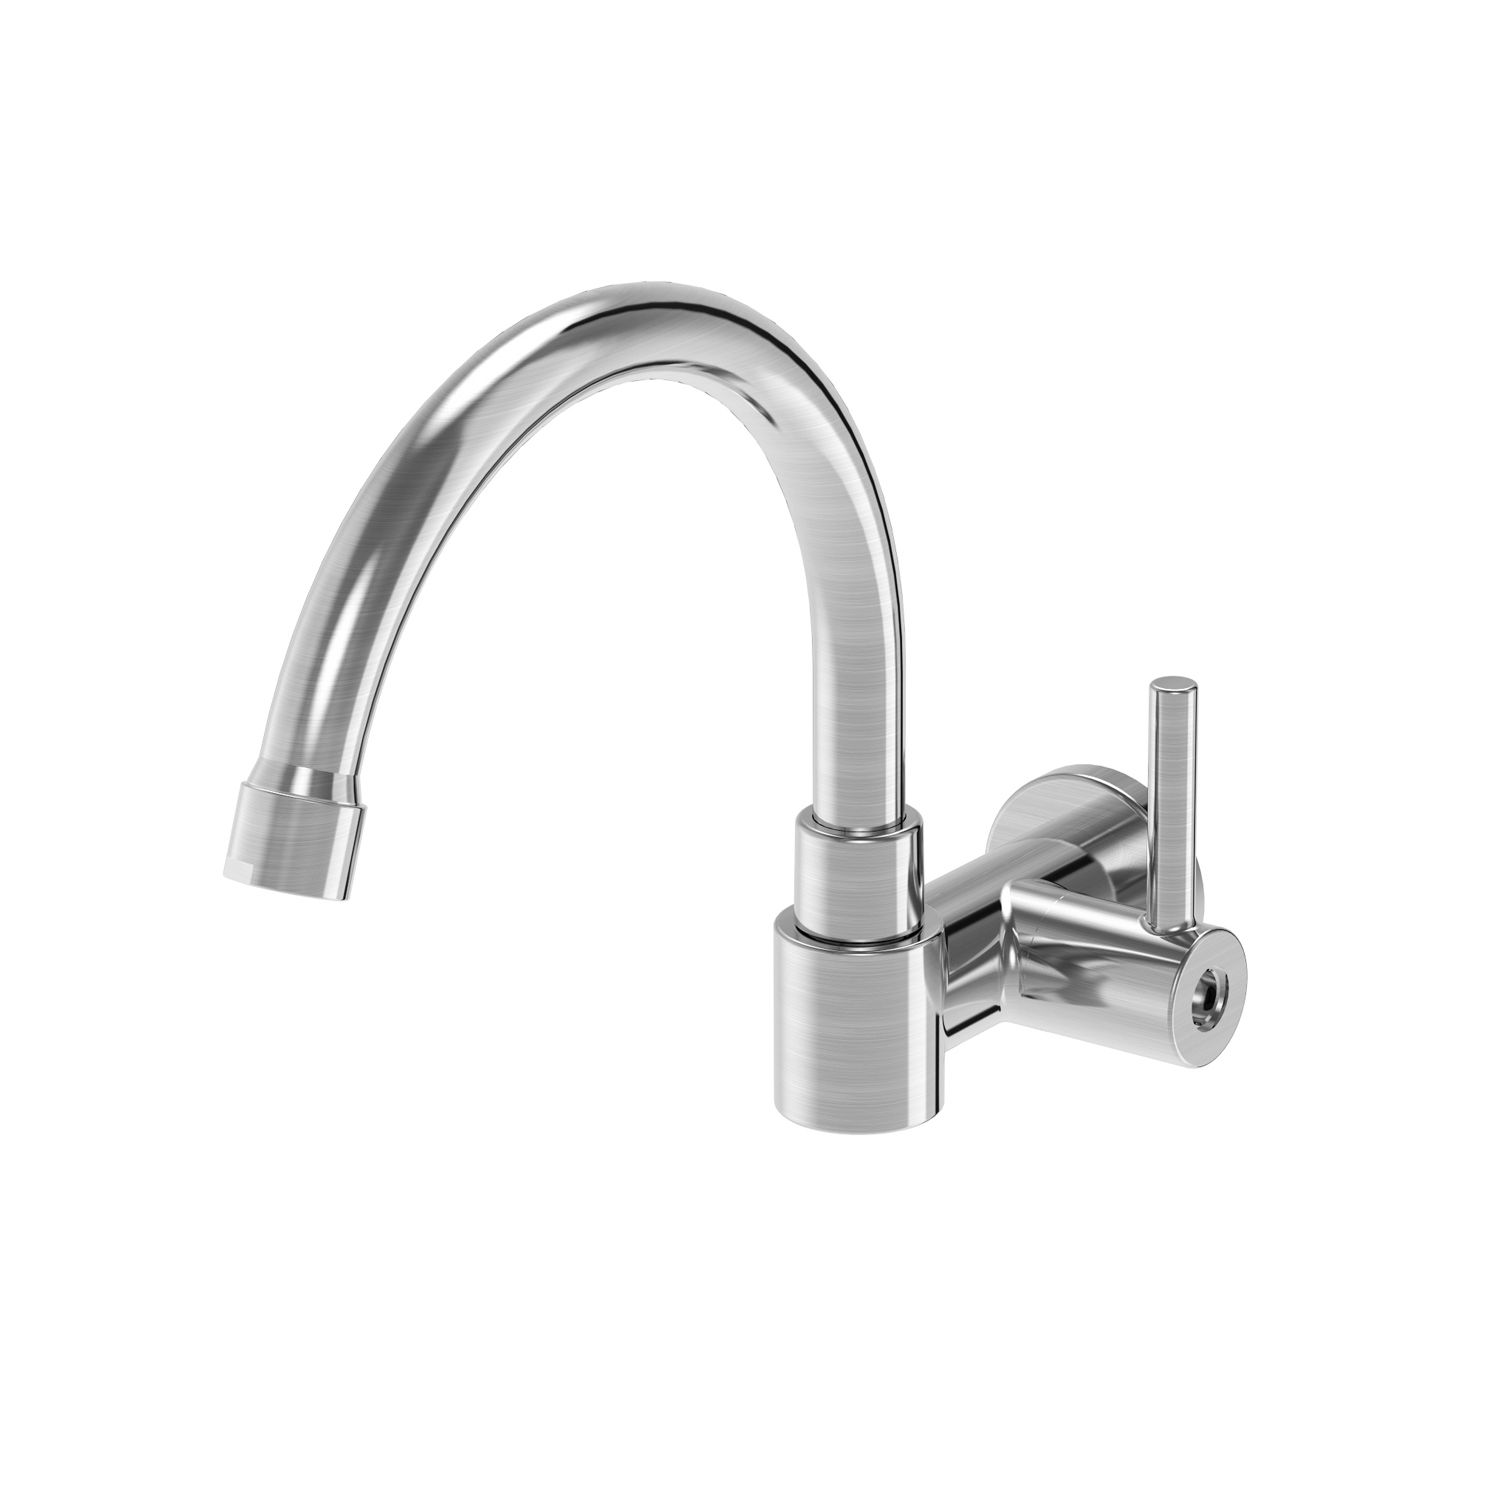 Parmir SSK-110 Single Handle Wall Mounted Pot Filler Faucet | Pot ...